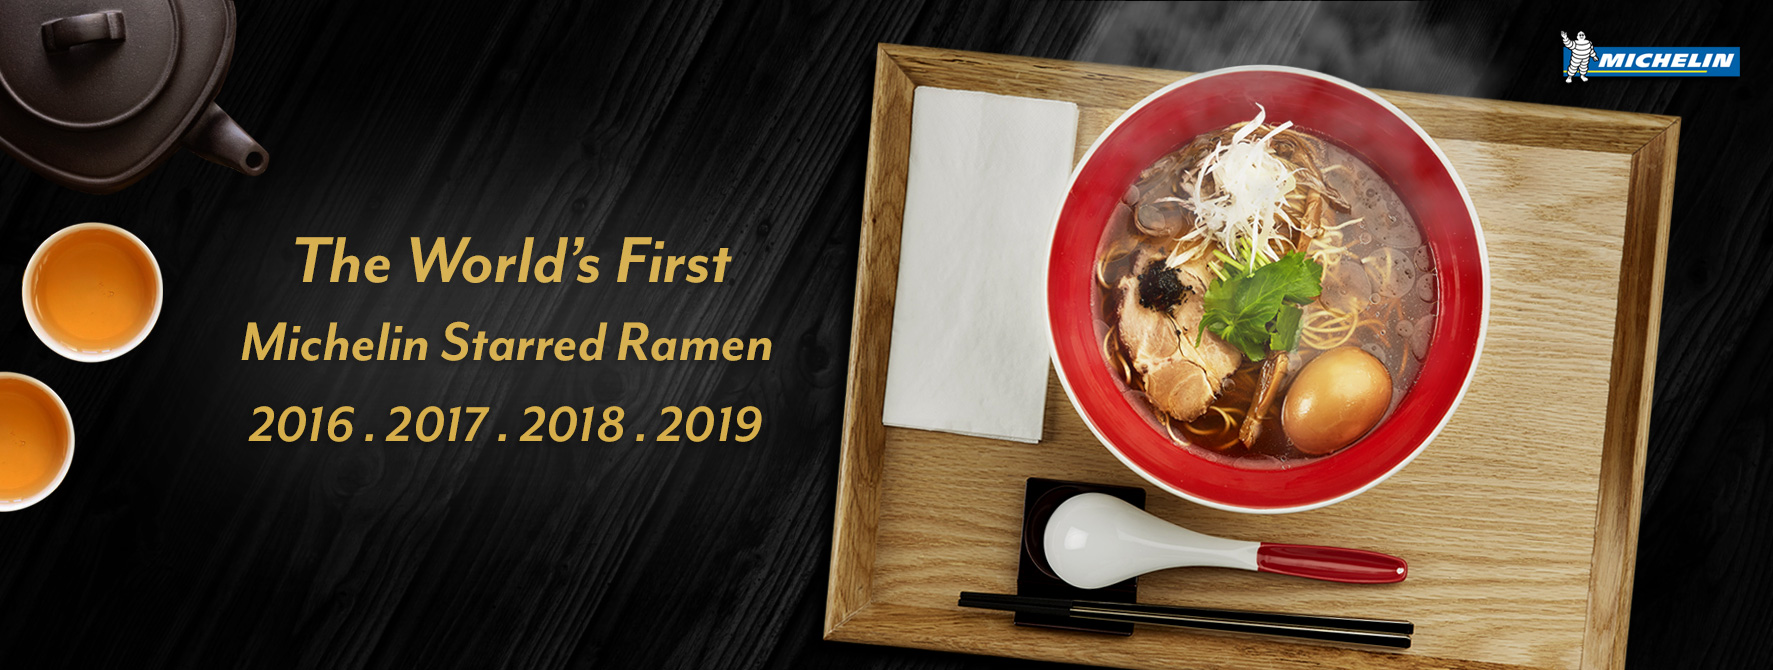 The would's first michelin starred ramen